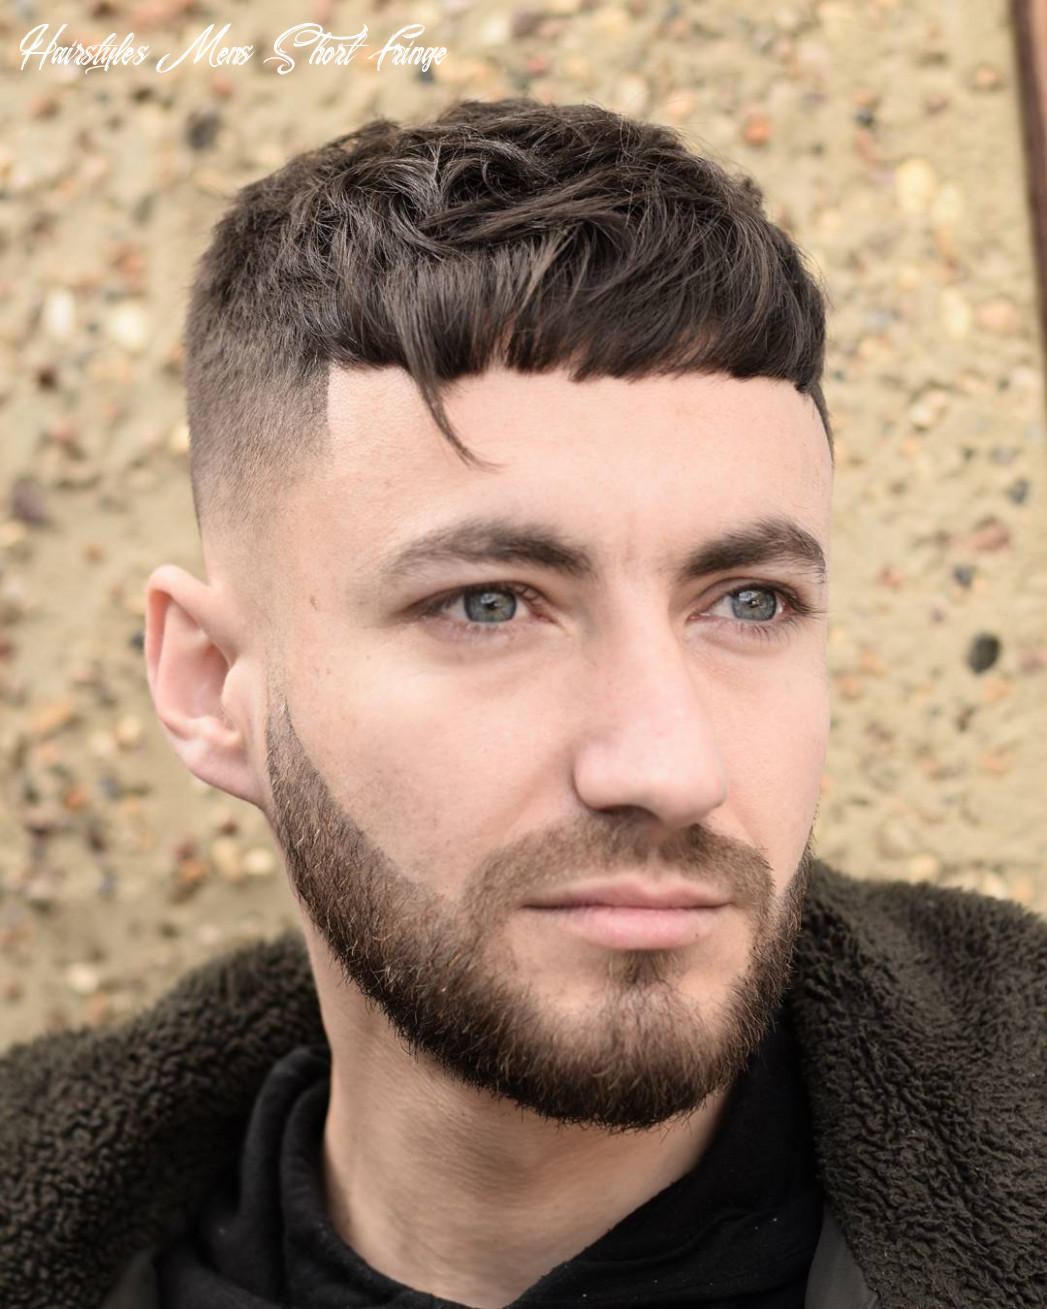 Short hairstyles for men hairstyle man hairstyles mens short fringe